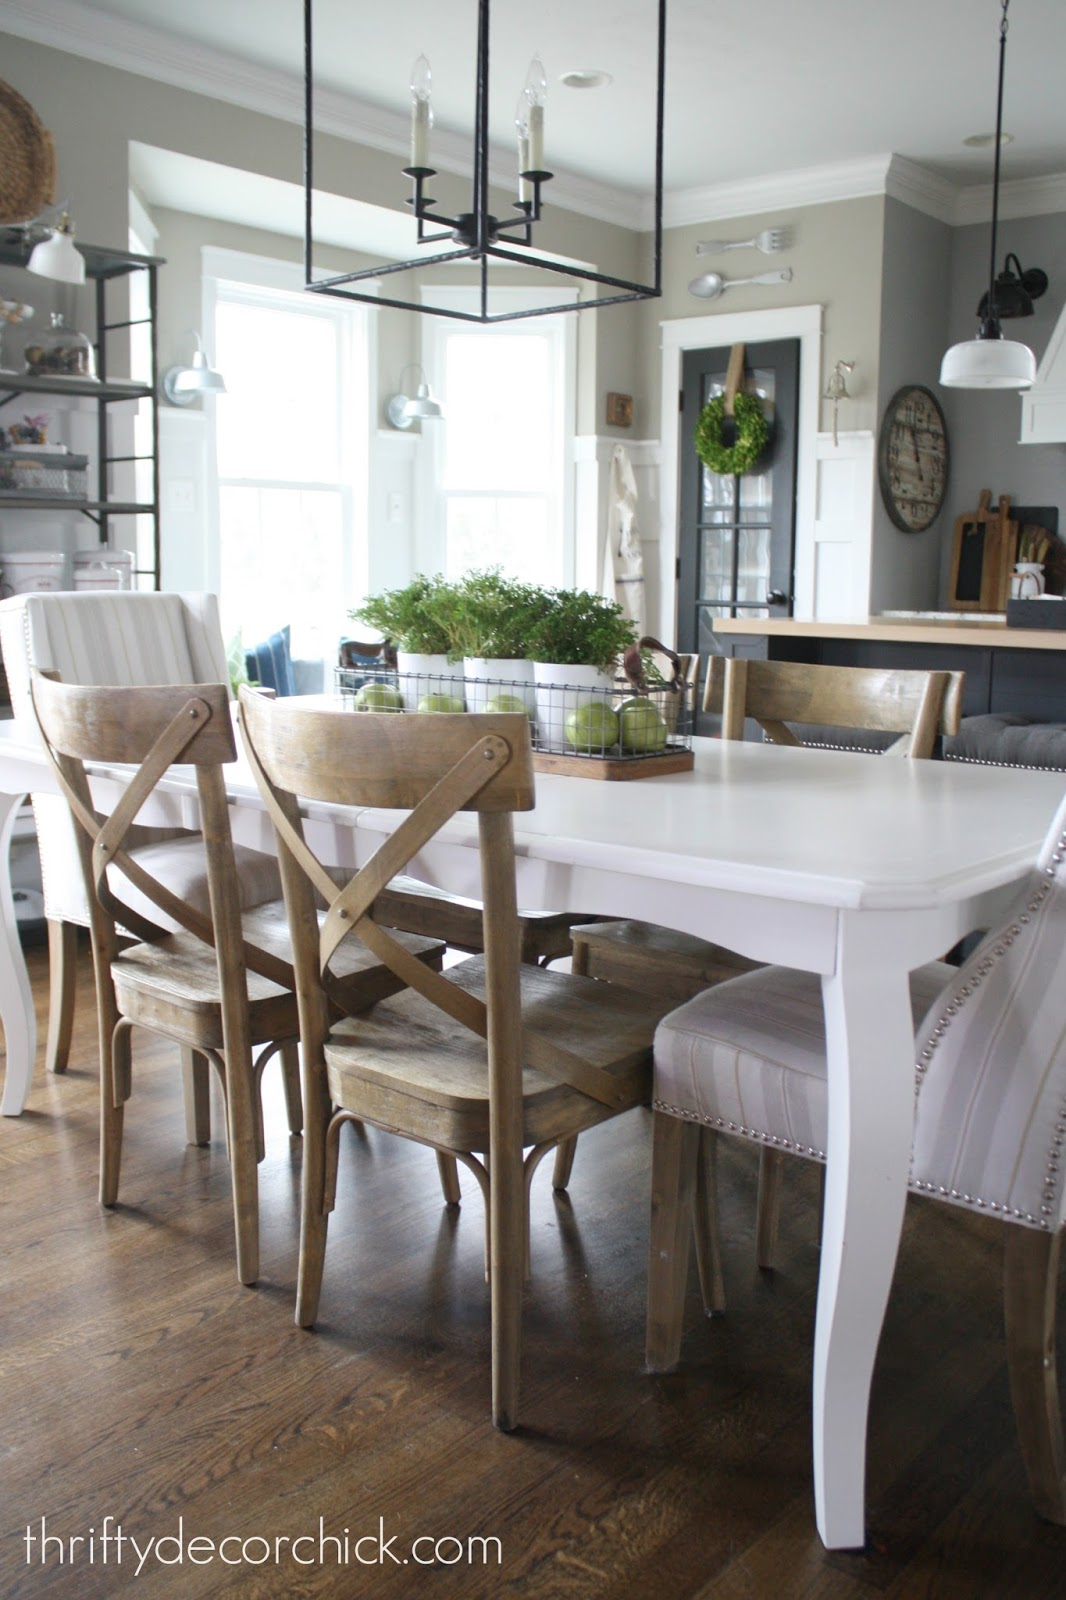 How Our Diy Kitchen Renovation Is Holding Up 1 1 2 Years Later From Thrifty Decor Chick